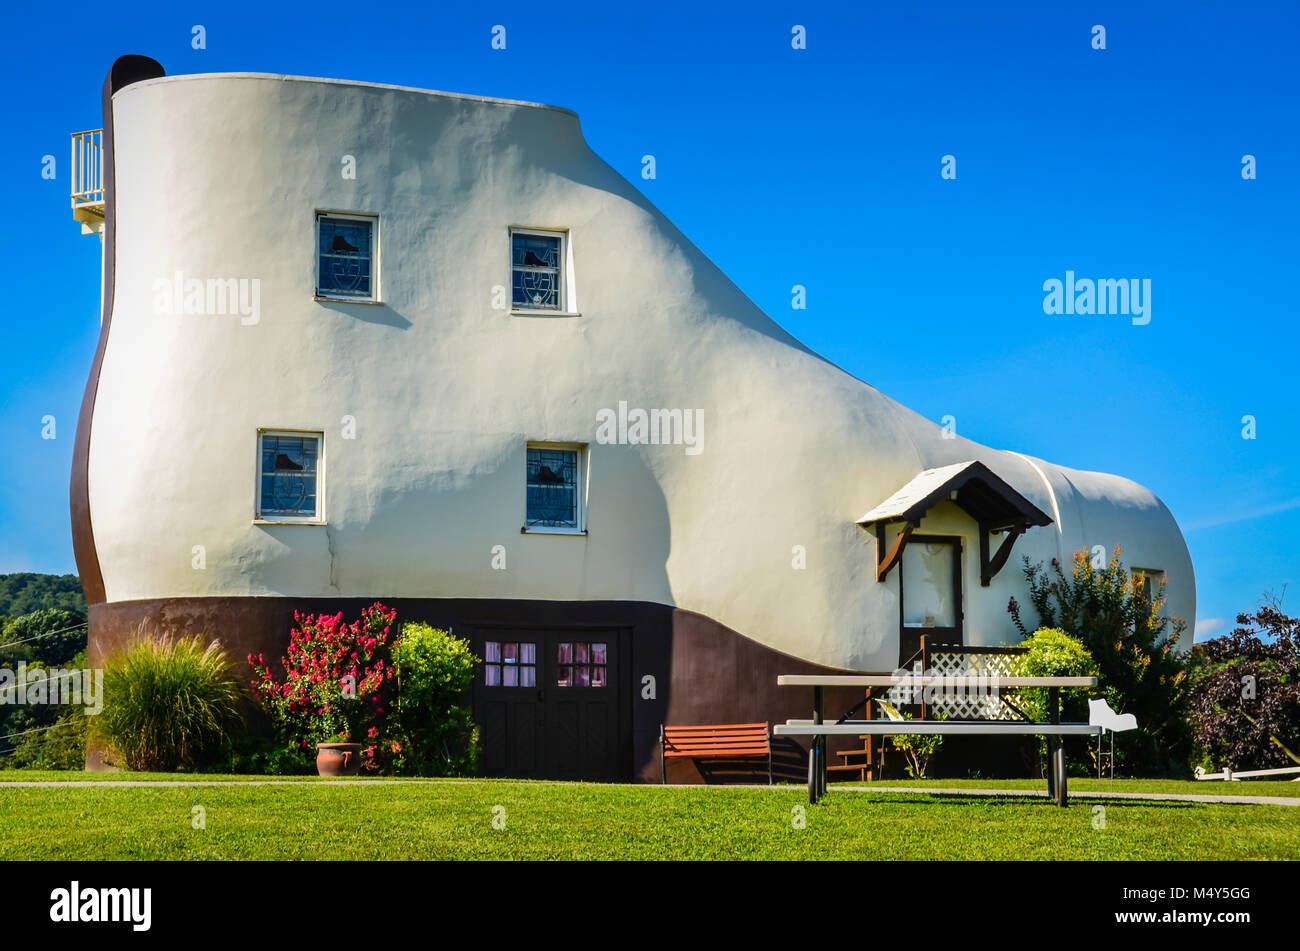 Haines Shoe House roadside attraction is one of the highlights of Hallam, PA on the transcontinental Lincoln Highway. - Stock Image